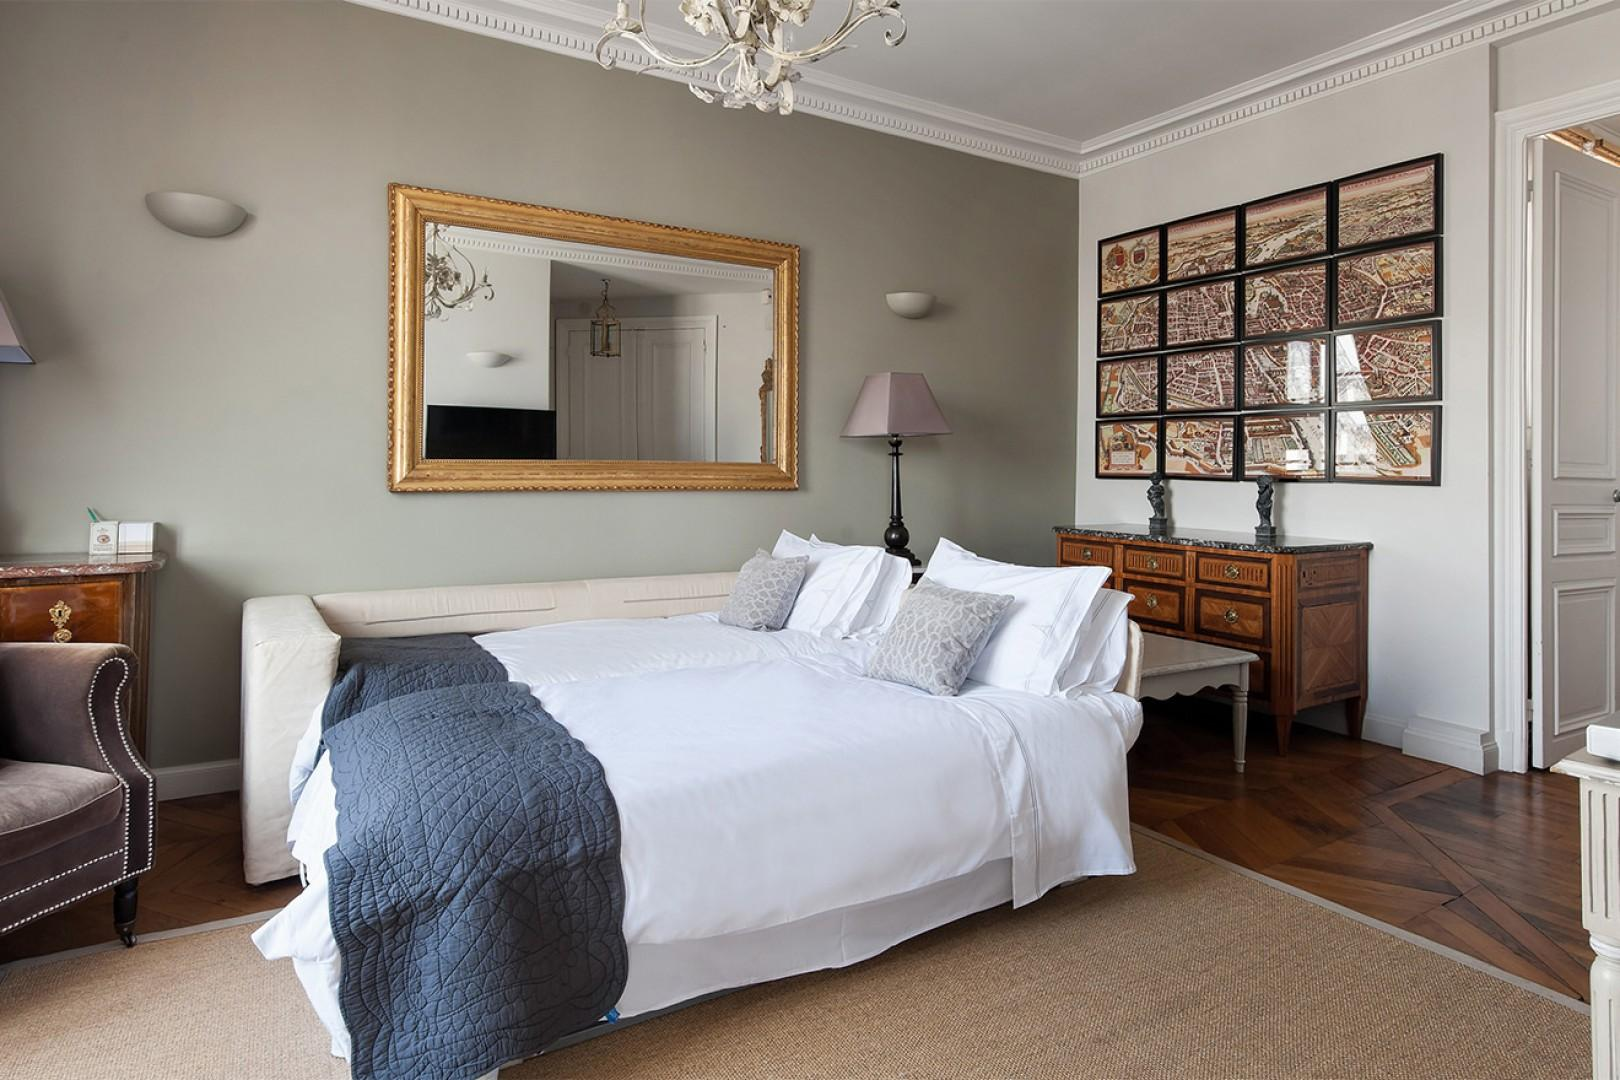 The living room is equipped with a high-quality sofa which converts into extra sleeping space.